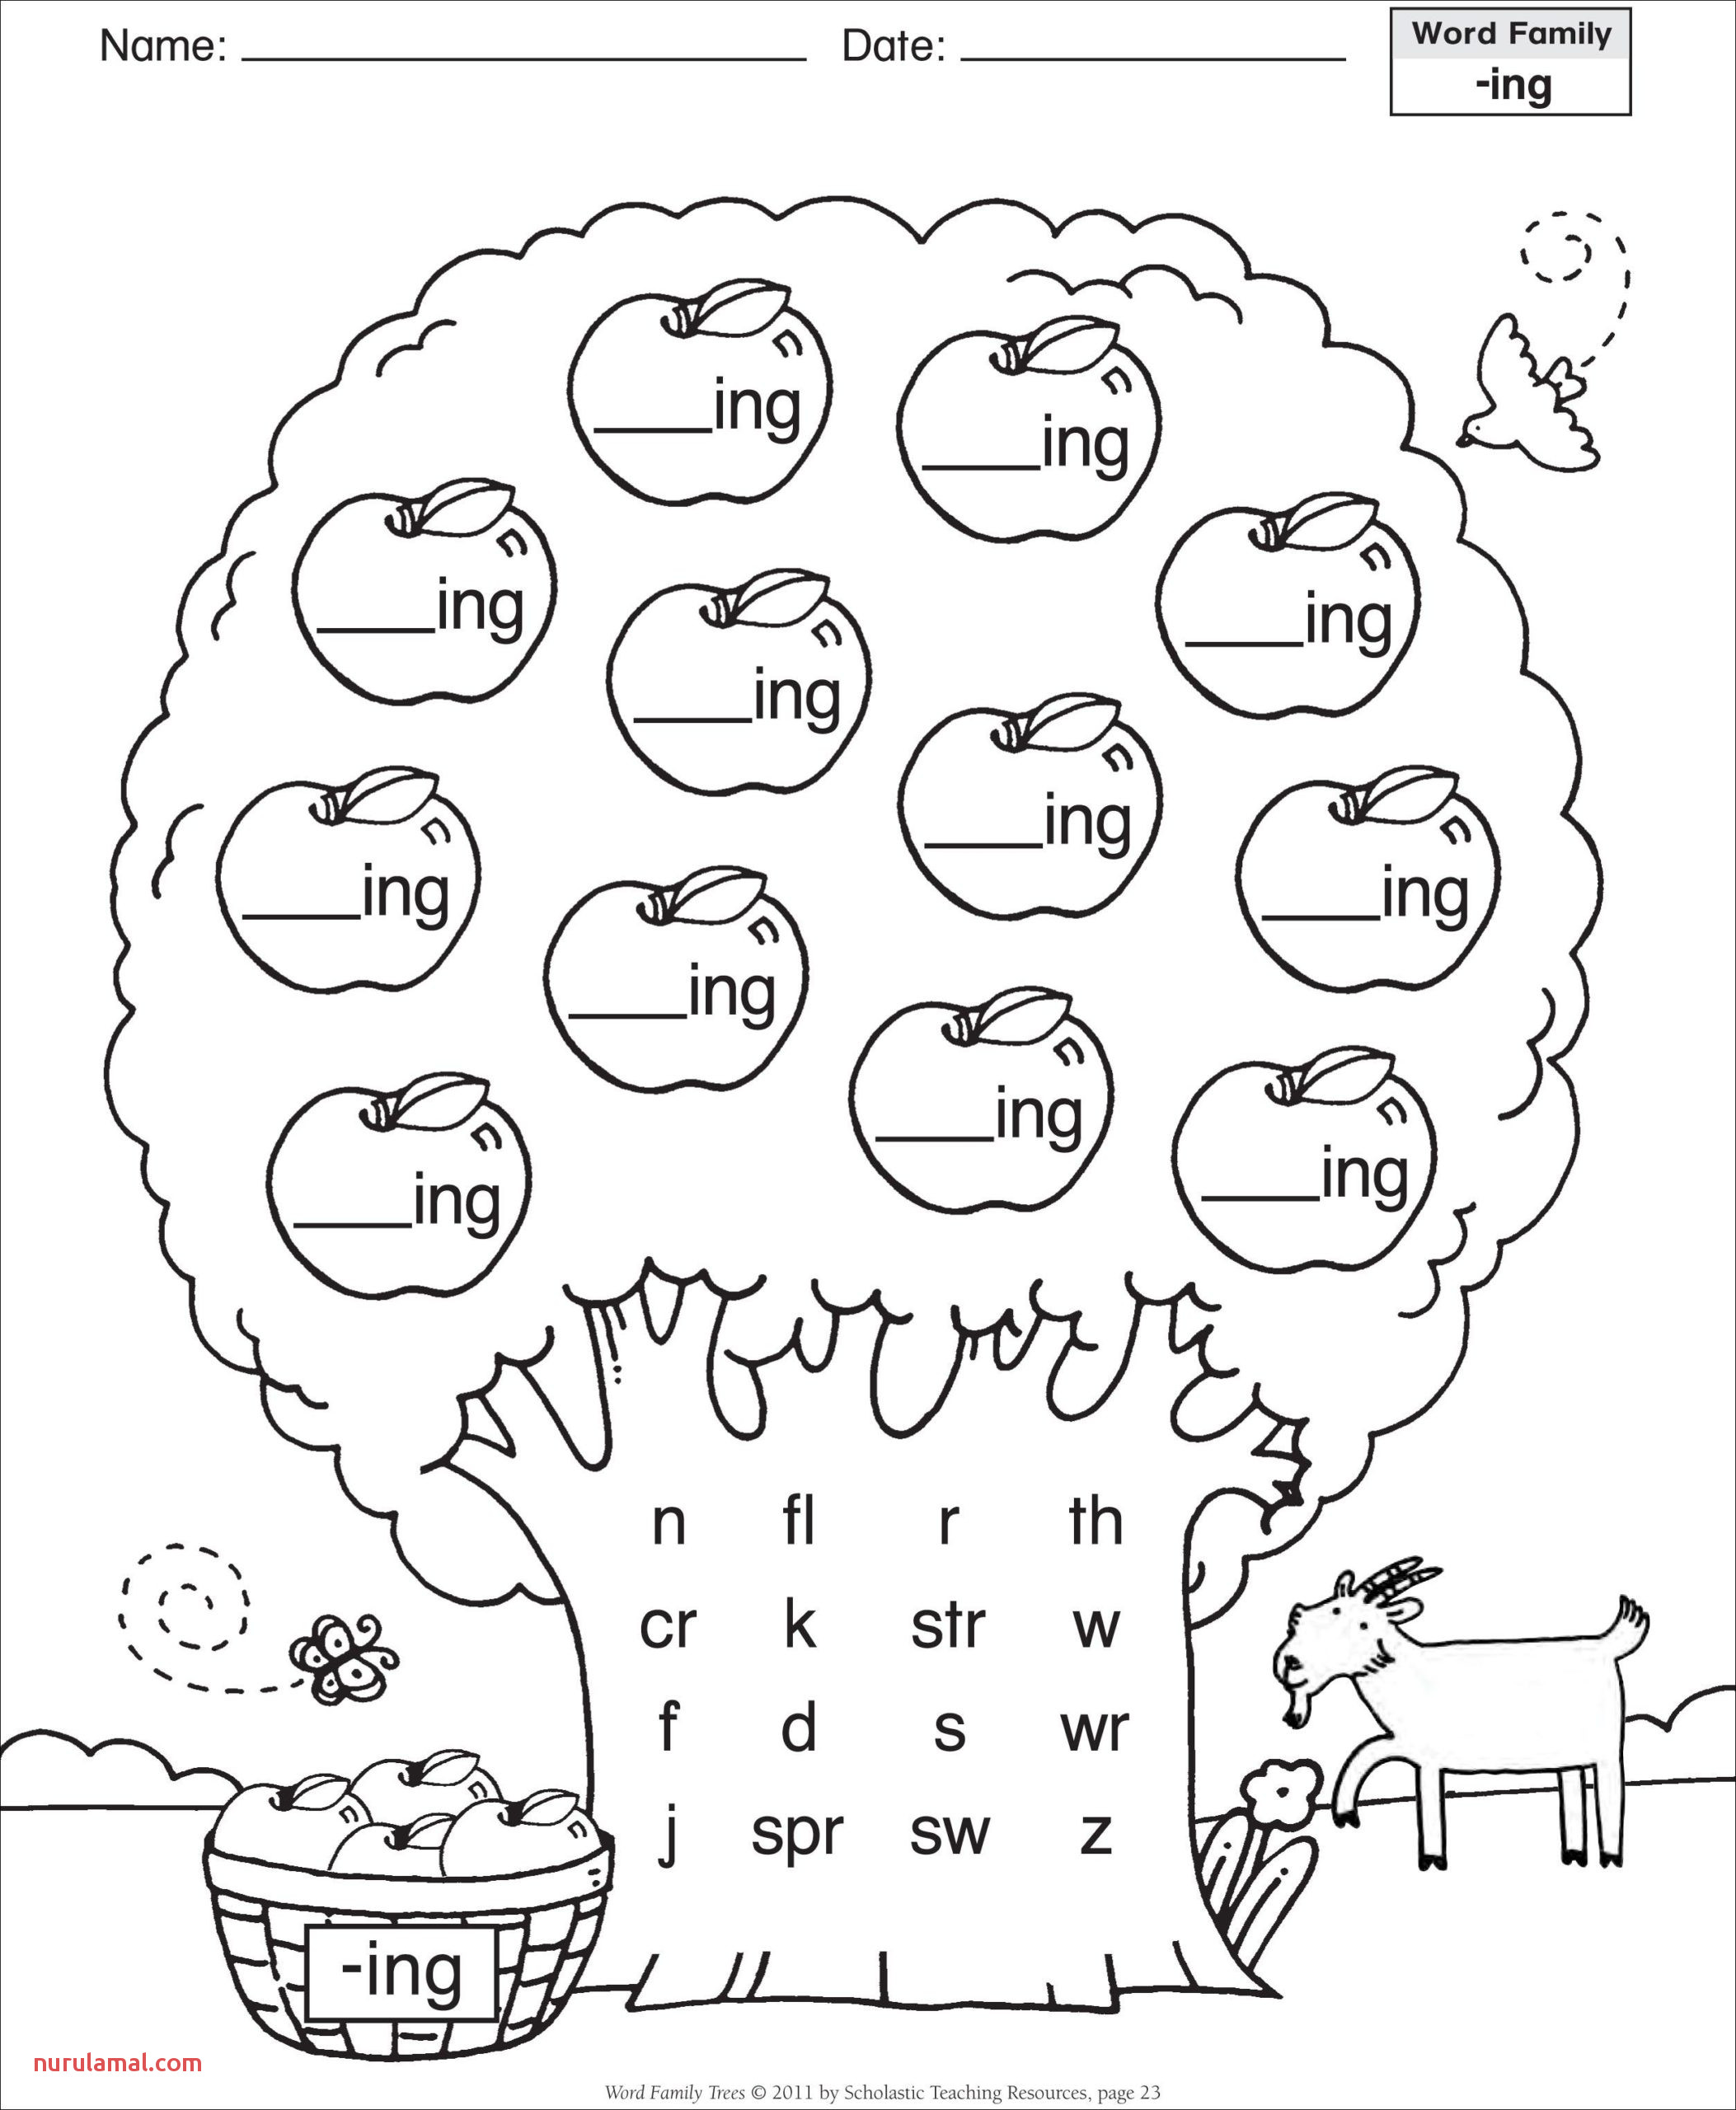 free printable preschool english worksheets 9th grade math multiplication year reading exercises for practice questions website that does problems you and shows work 6th ap pr alphabet kids scaled